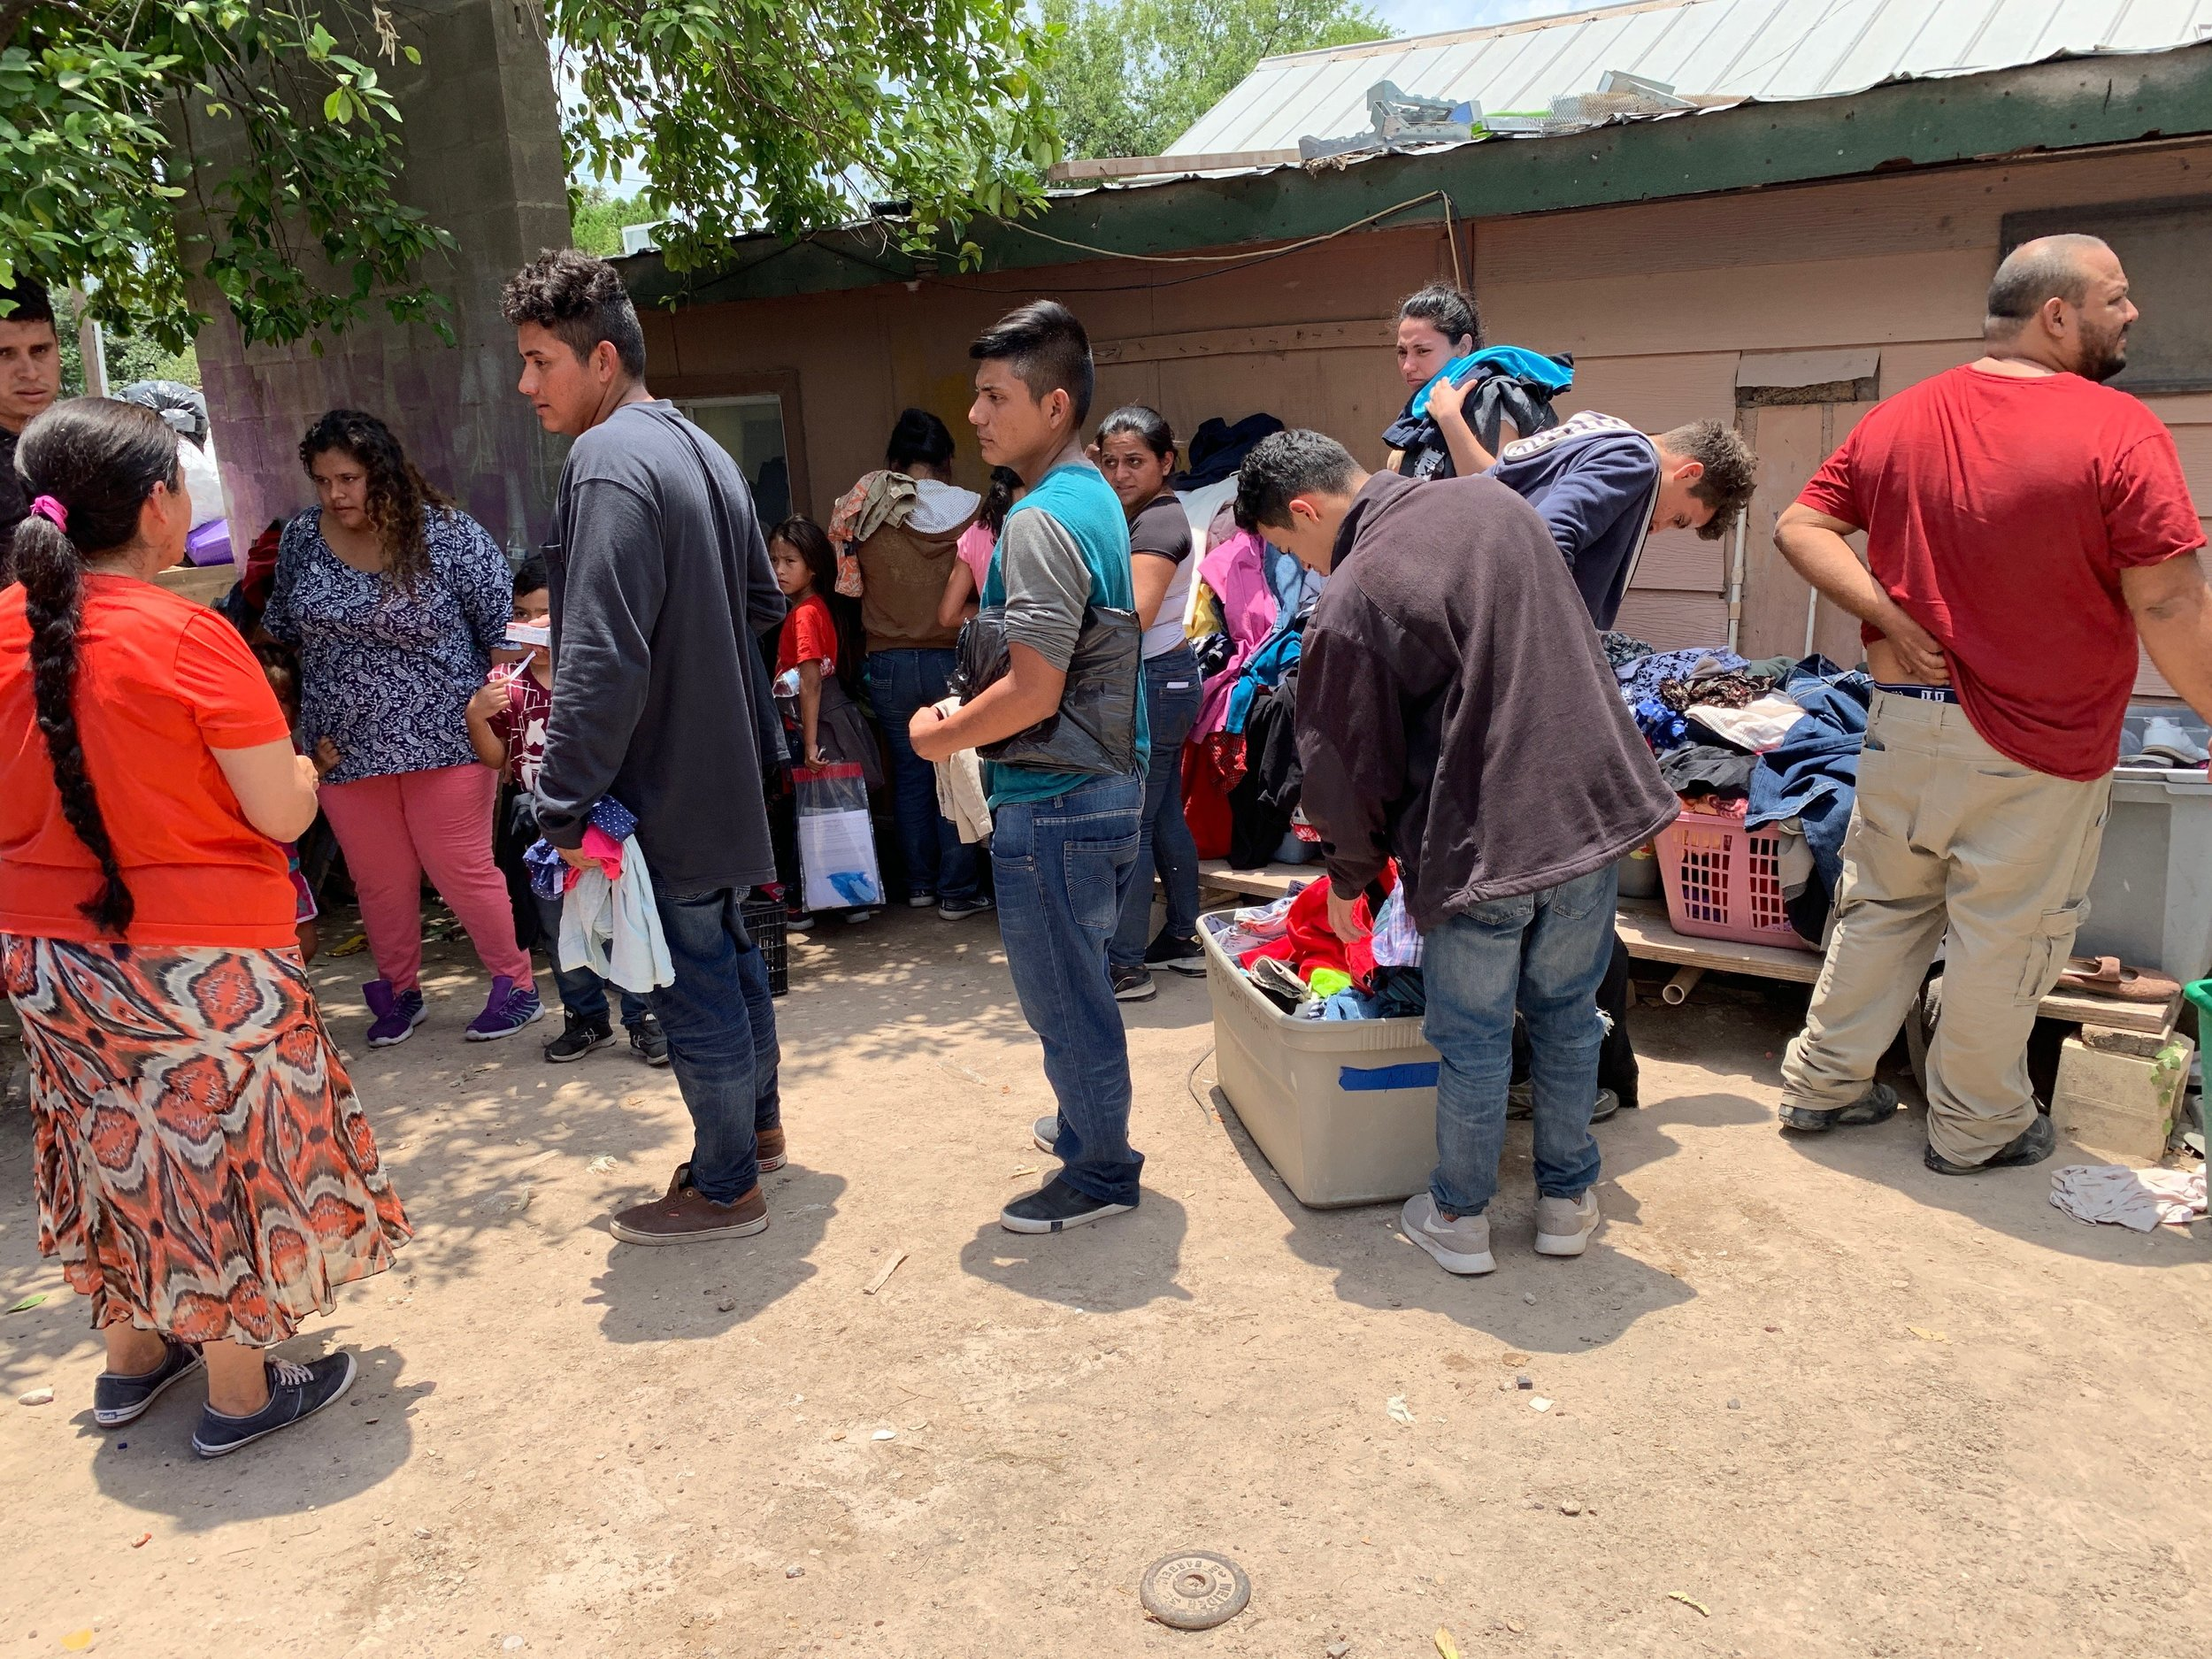 Here are the refugees in the backyard of pastor Ortiz's house looking for clothes before they shower.